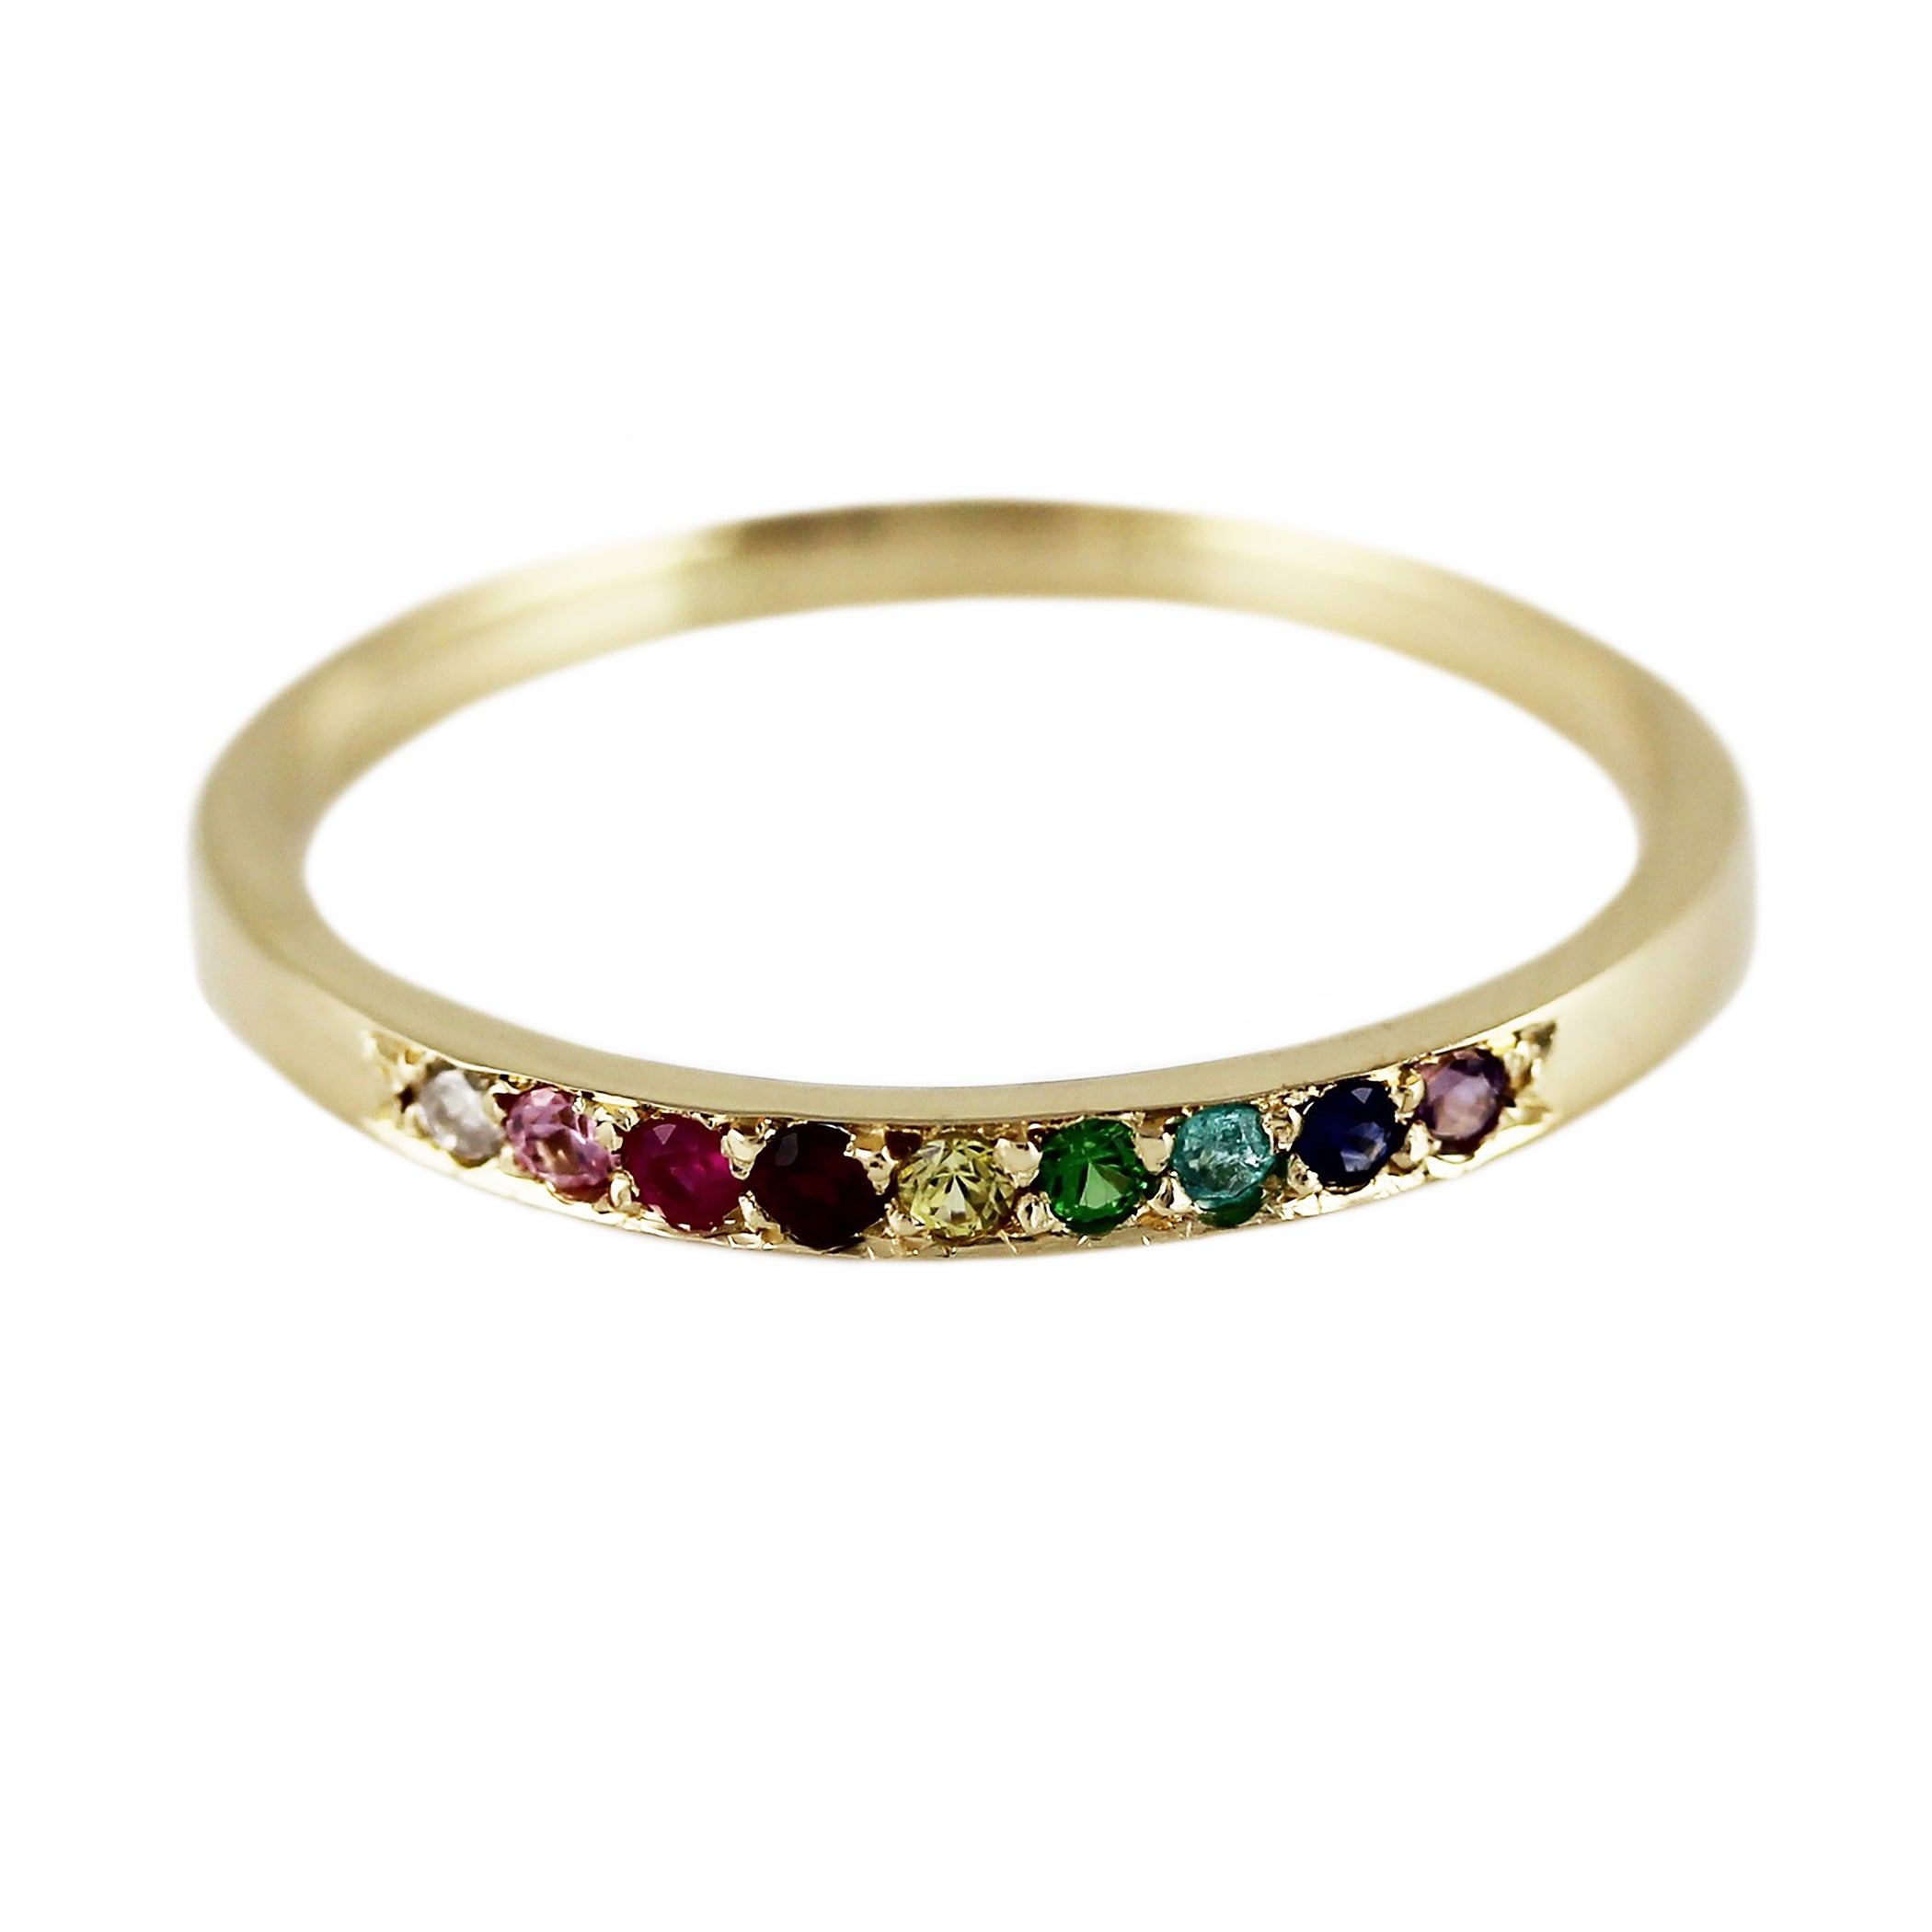 tsavorite birks ring cocktail dsc garnet ways rings engagement sz products